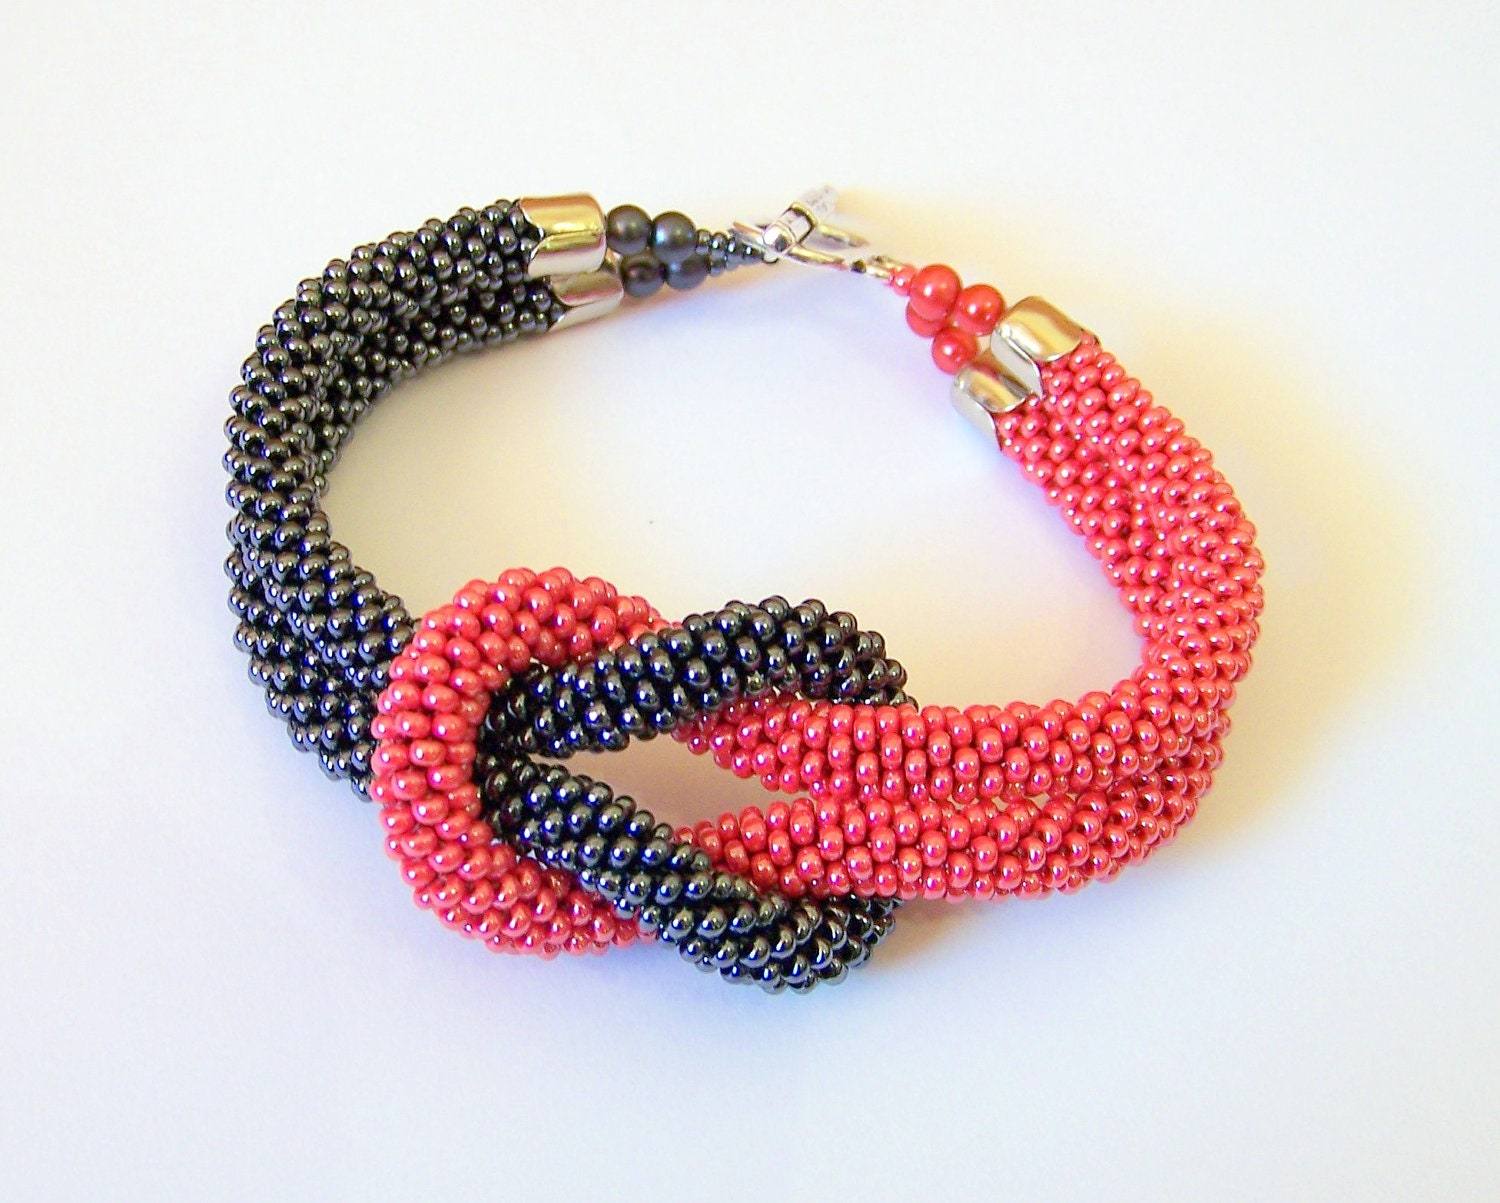 Crocheting Jewelry With Beads : Beadwork Bead Crochet Bracelet in grey and red Beaded by lutita